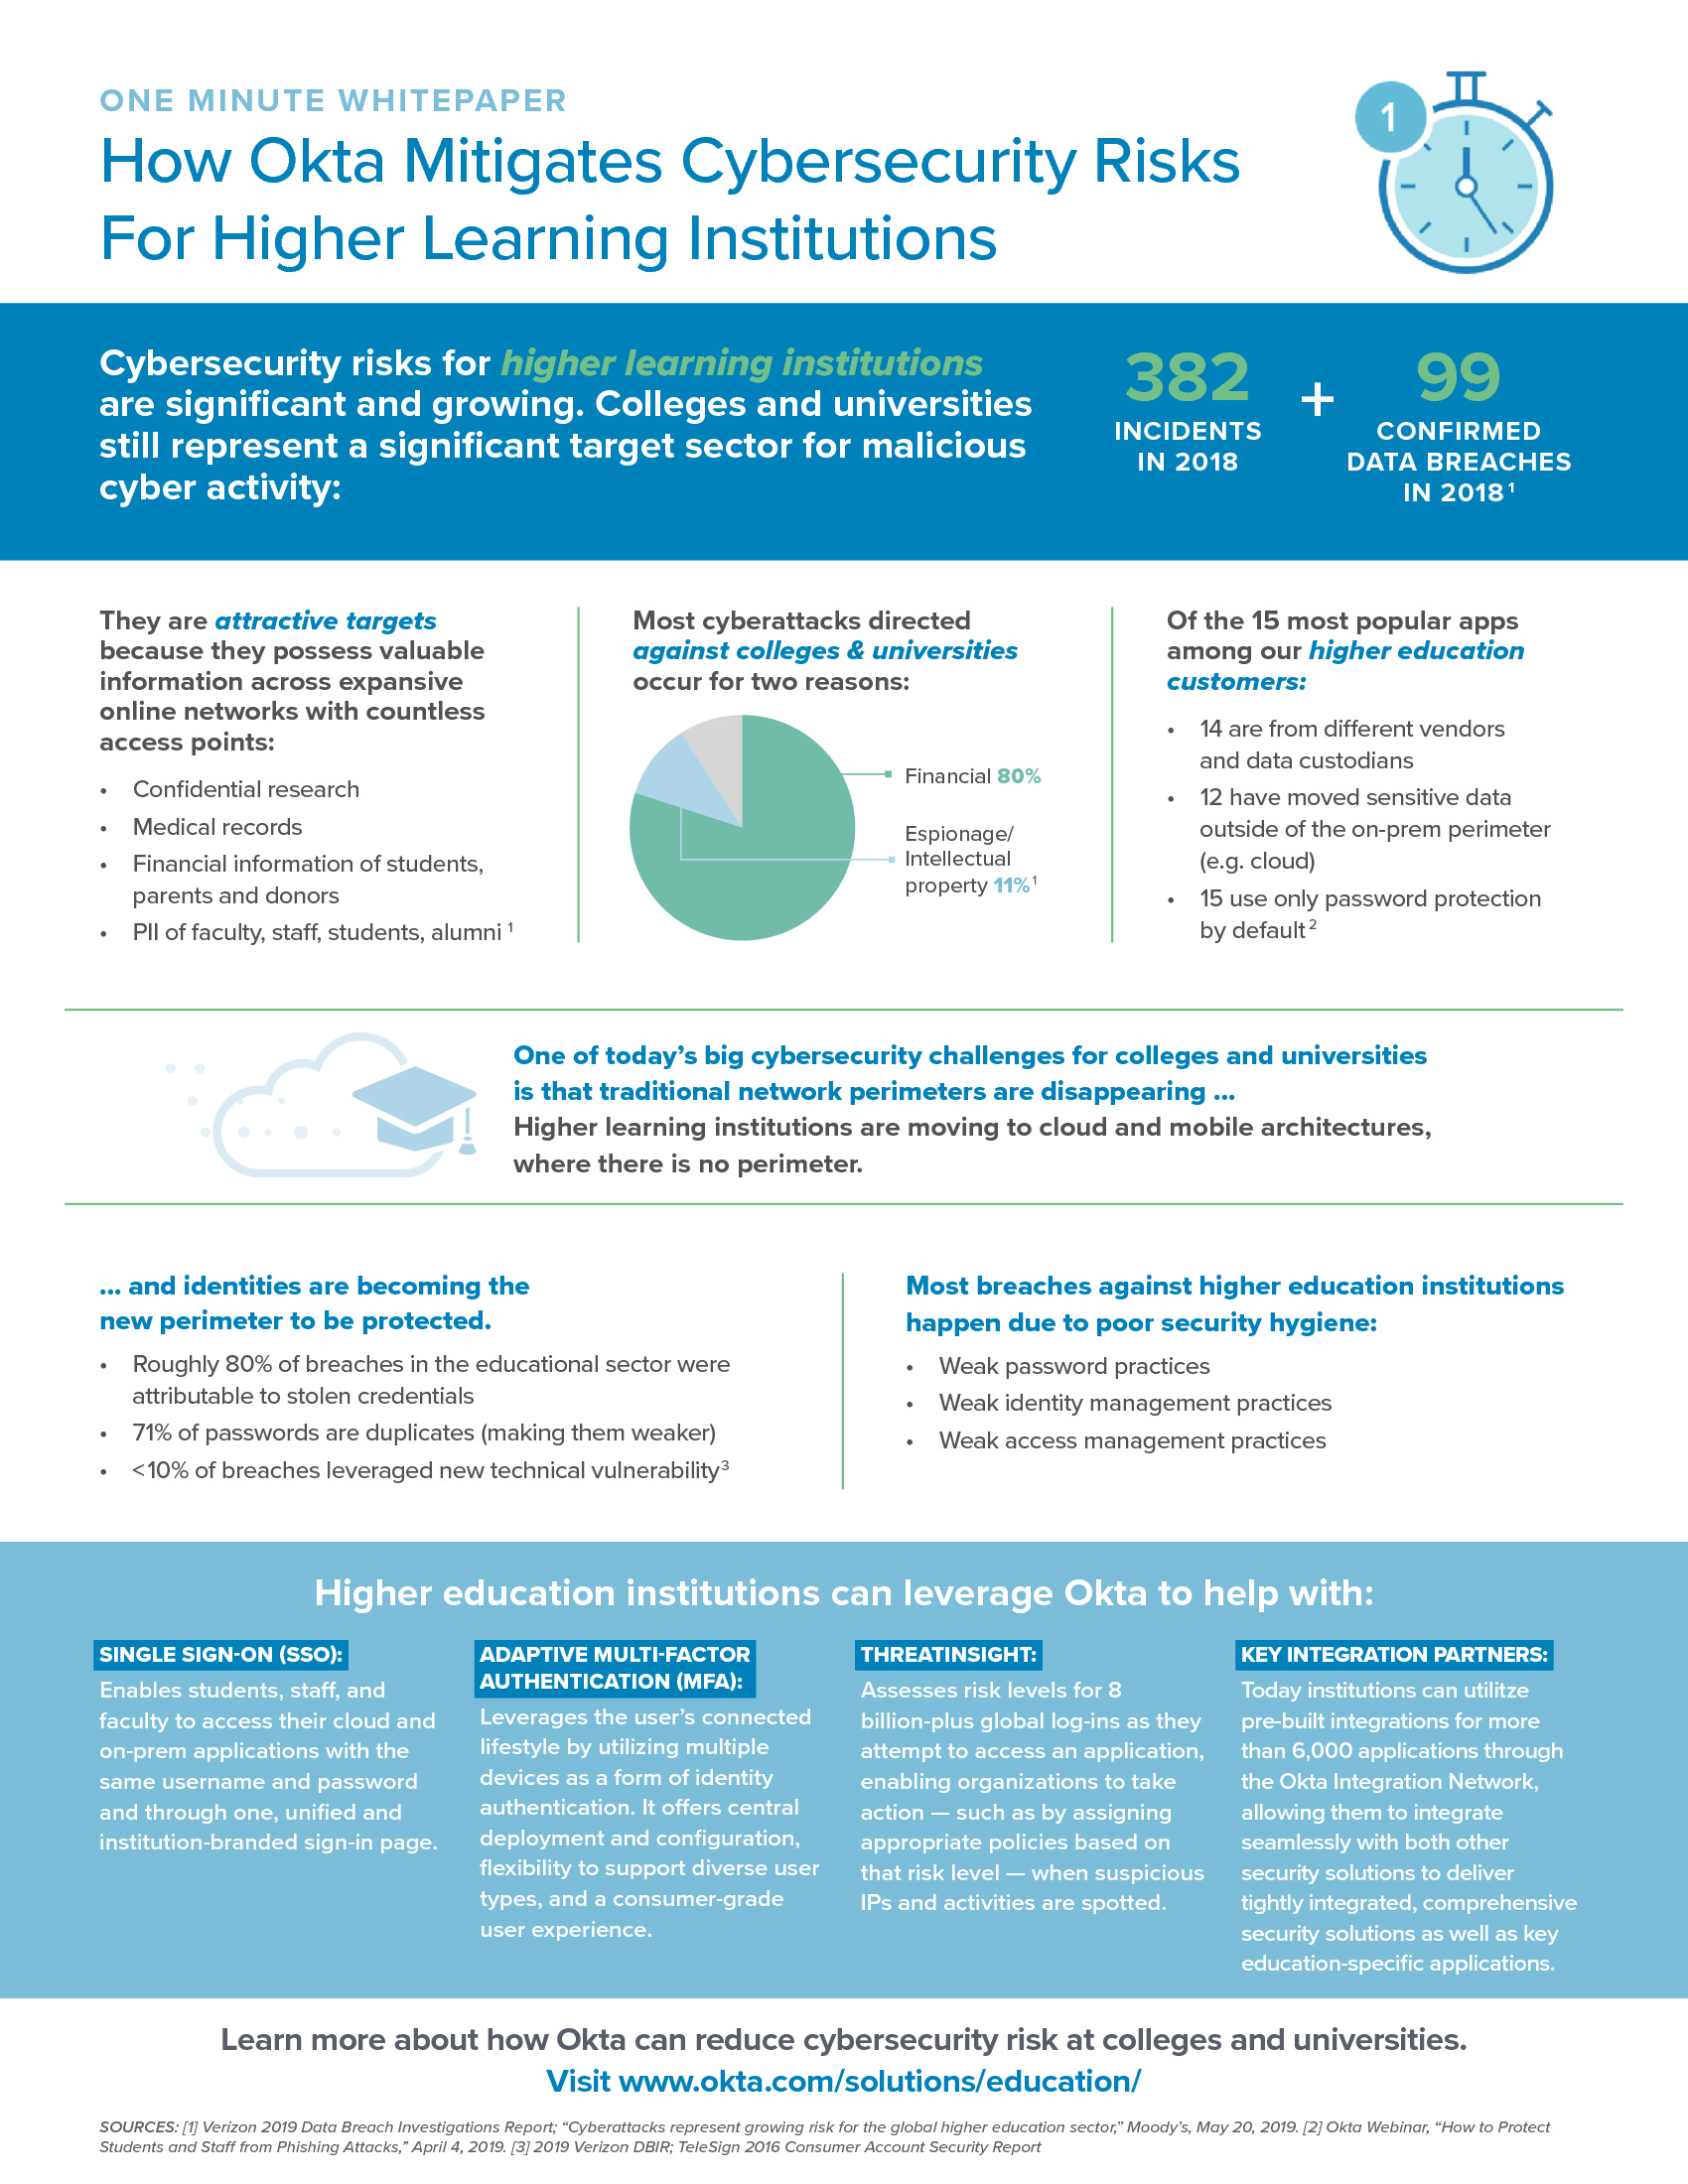 Mitigating Cybersecurity Risks For Higher Learning Institutions